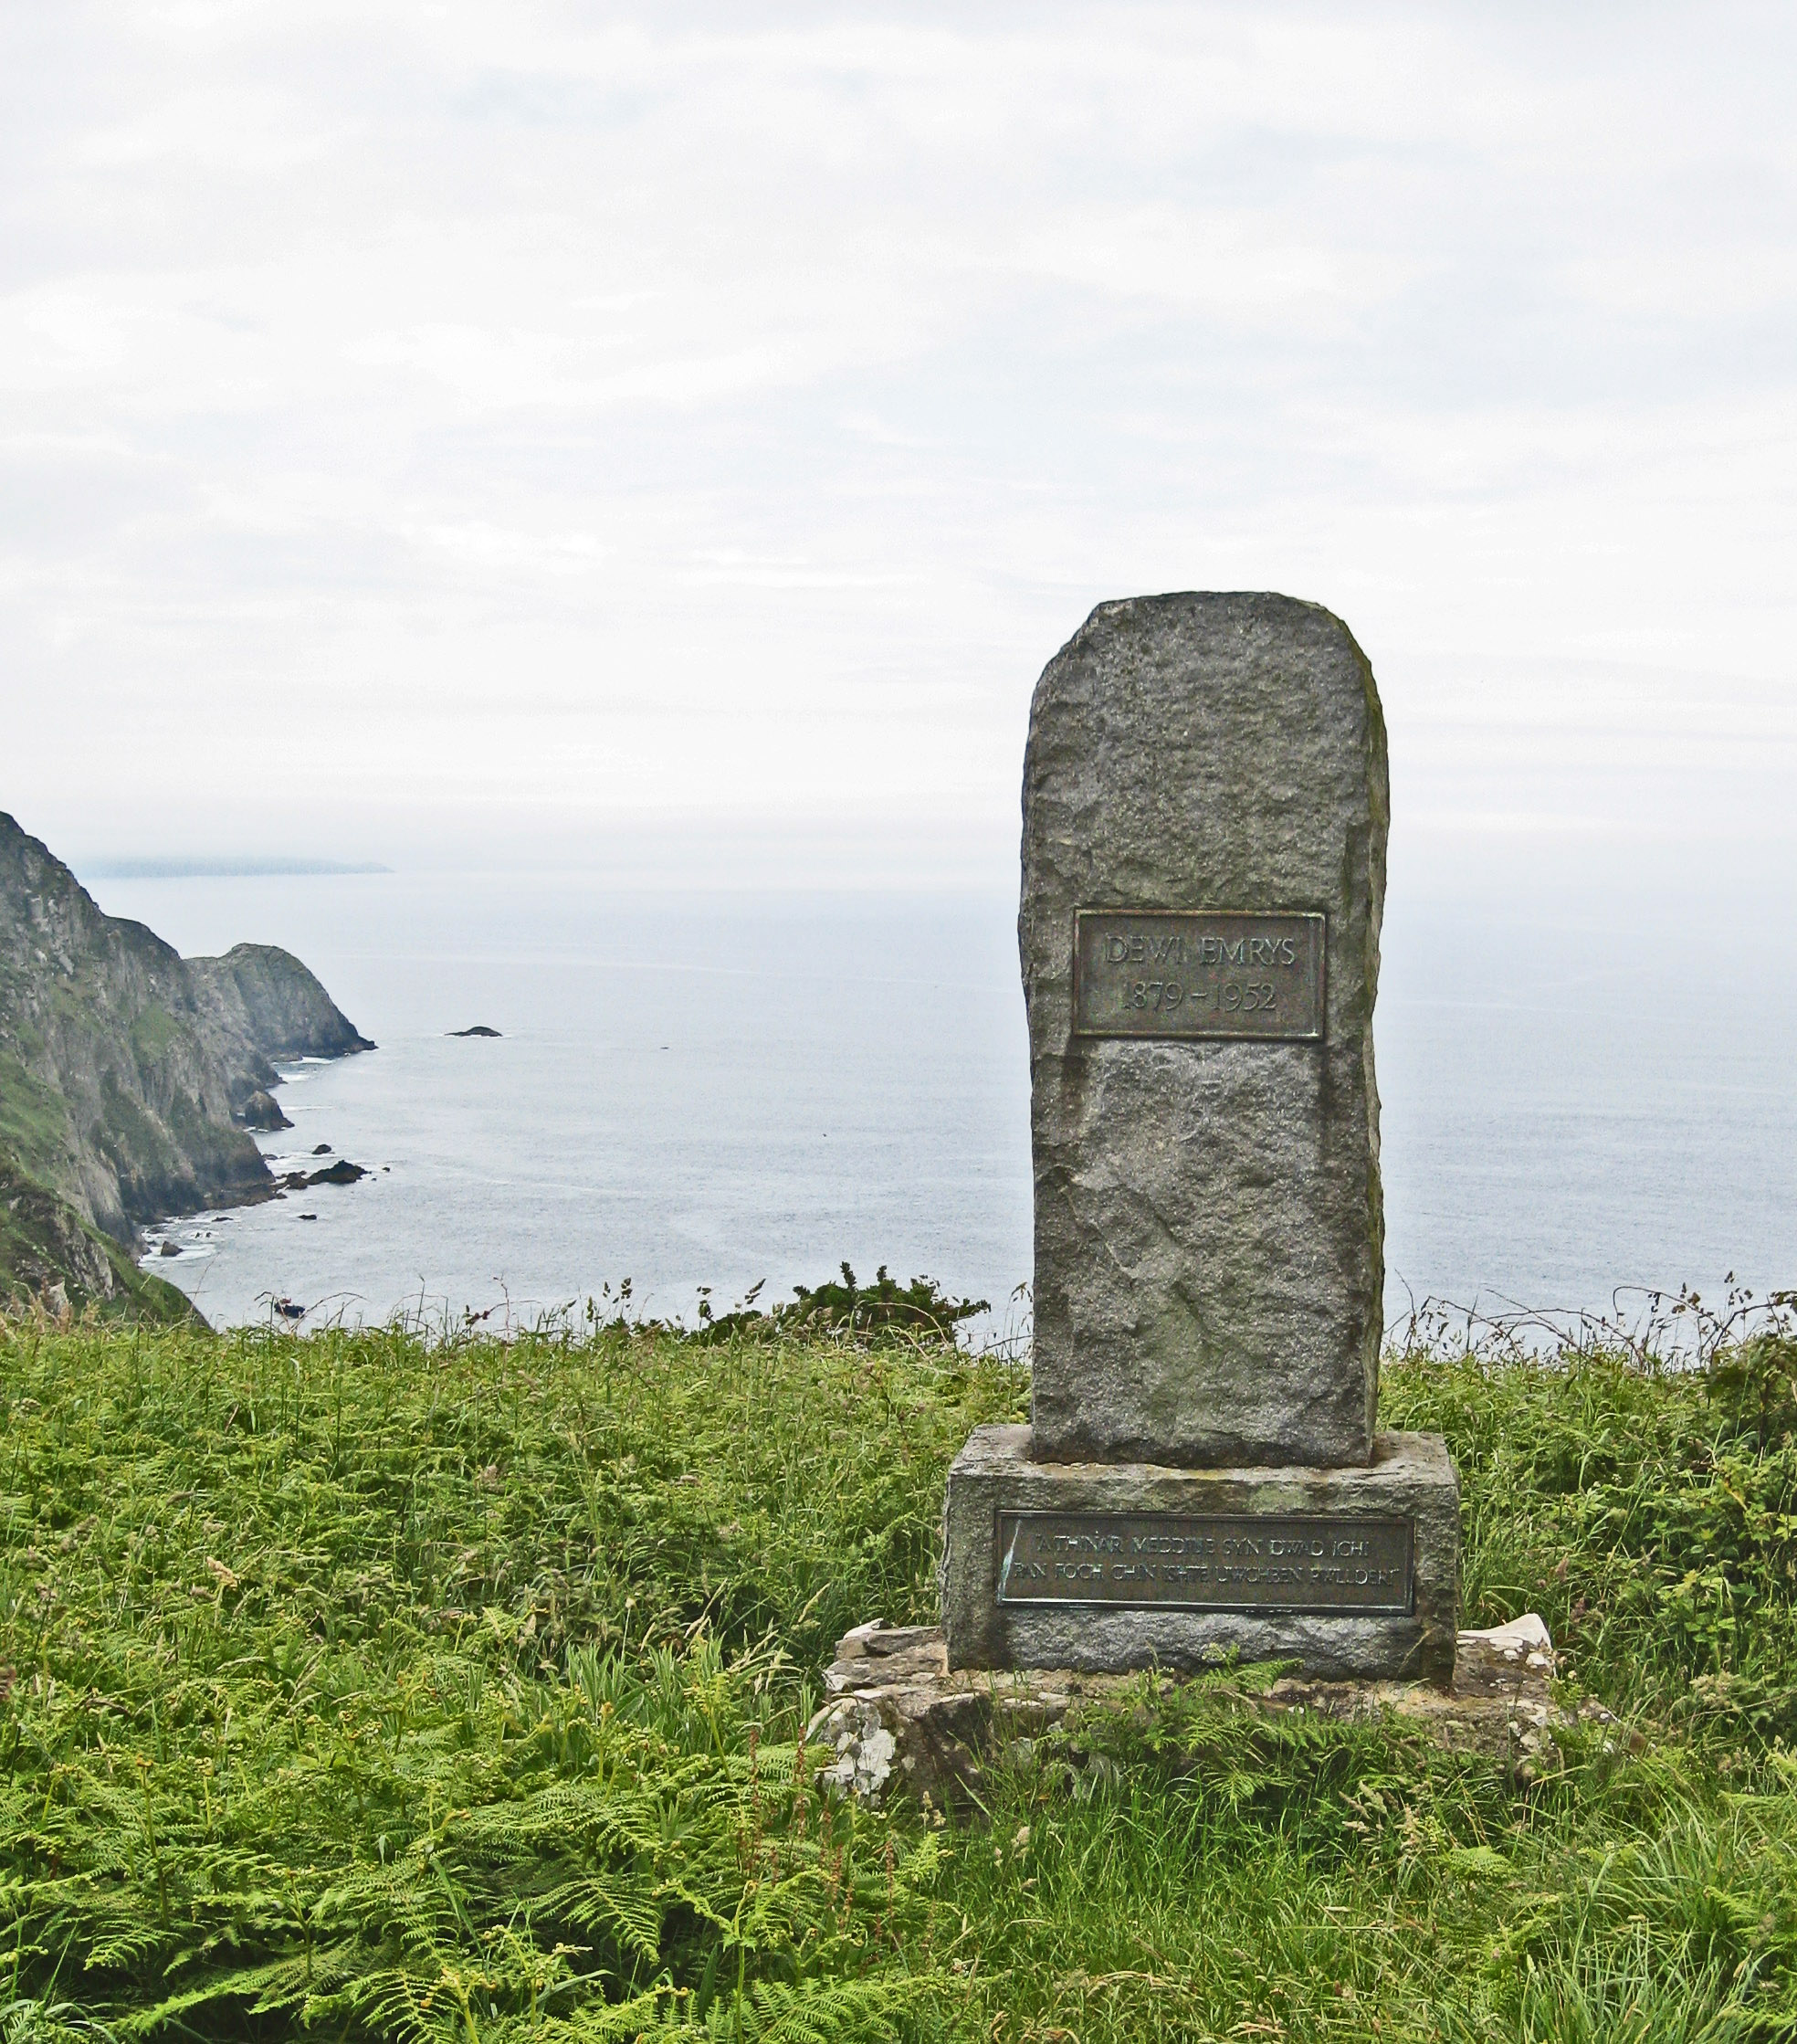 Memorial to poet Dewi Emrys at Pwll Deri